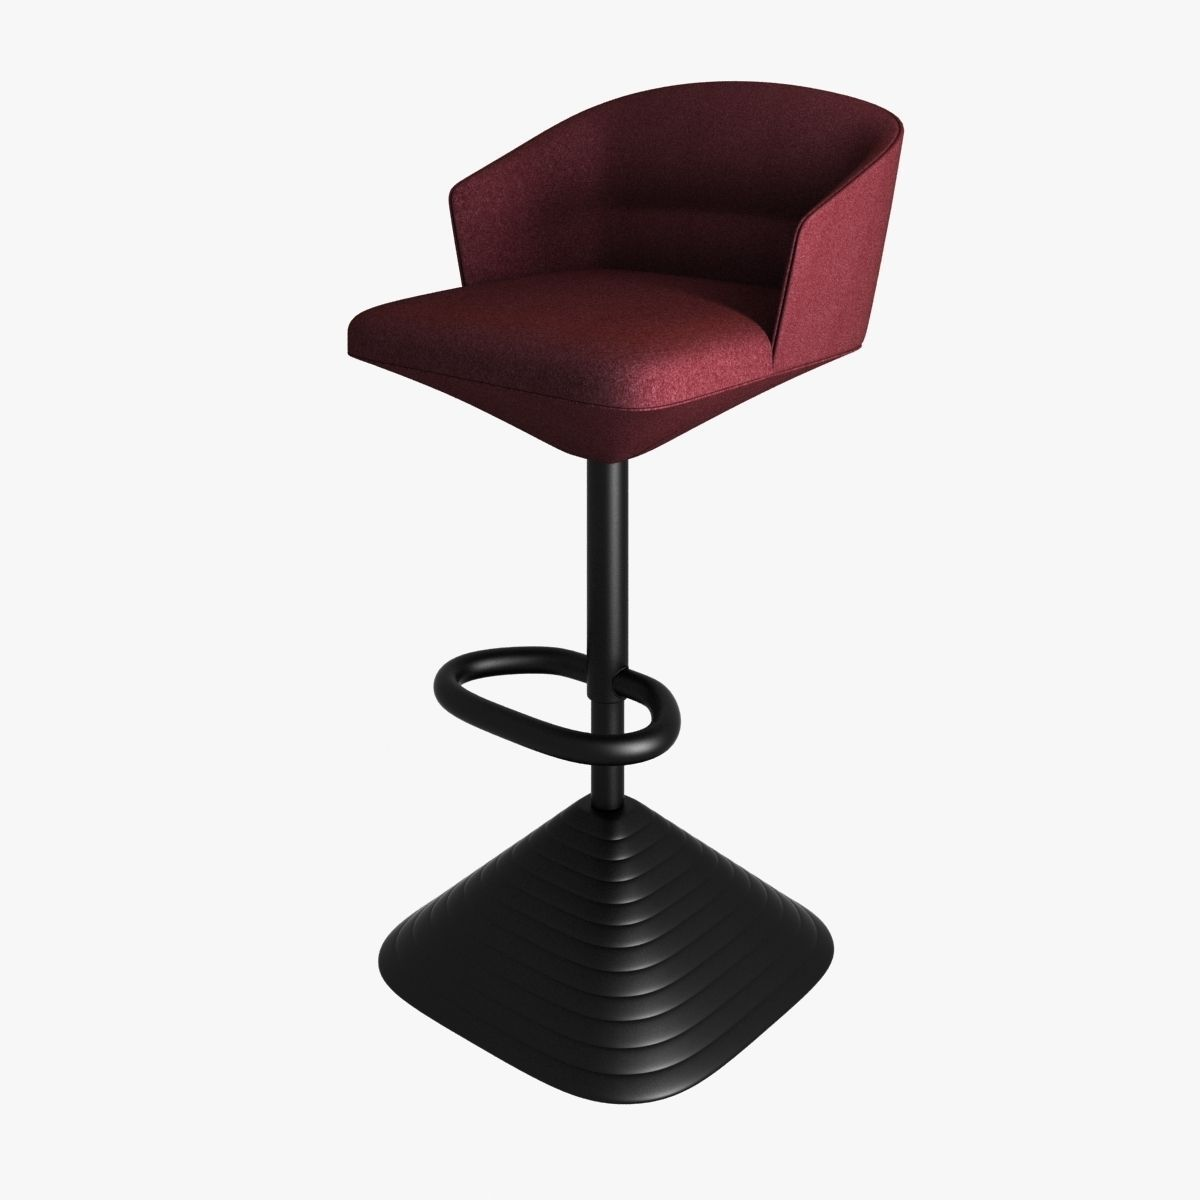 Excellent Tom Dixon Pivot Barstool 3D Model Gmtry Best Dining Table And Chair Ideas Images Gmtryco